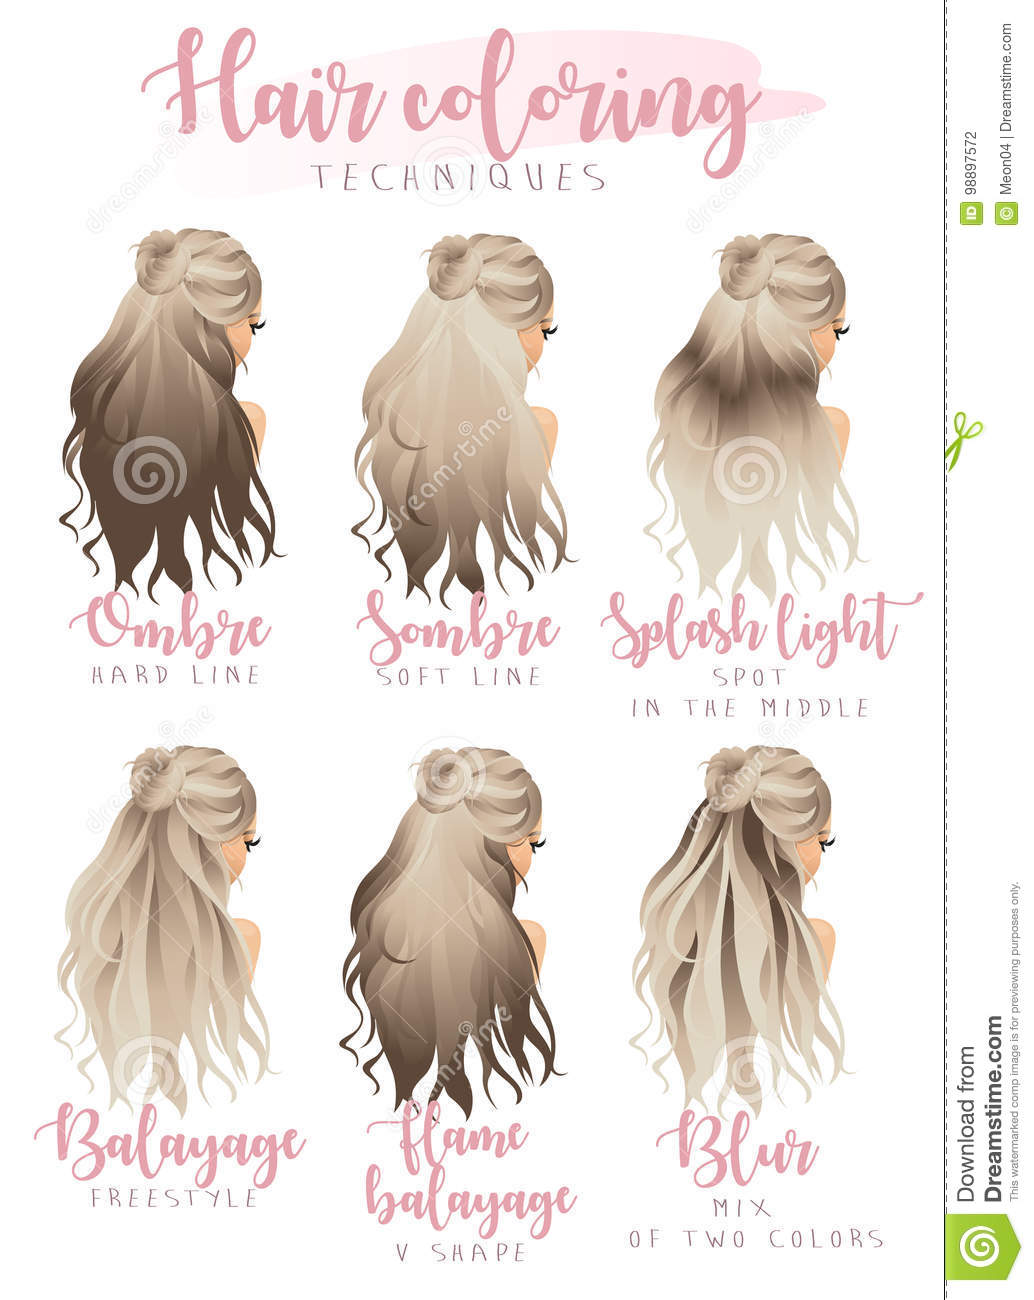 Hair coloring techniques stock vector. Illustration of human - 98897572